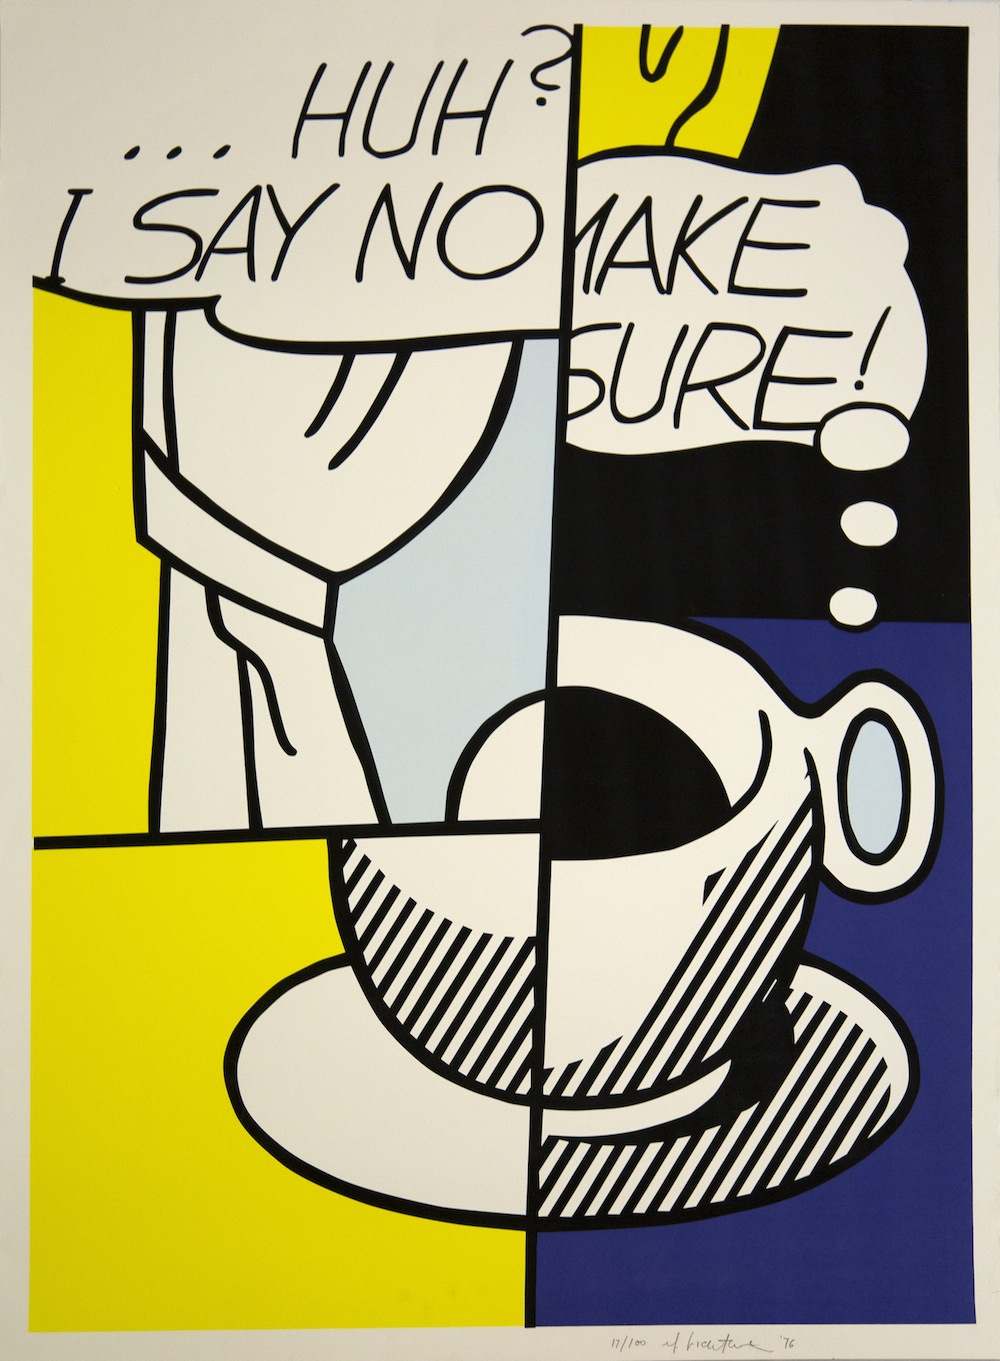 Roy Lichtenstein, Huh? I say no make sure!, 1976, Serigrafía (17/100), 106 x 76 cm.